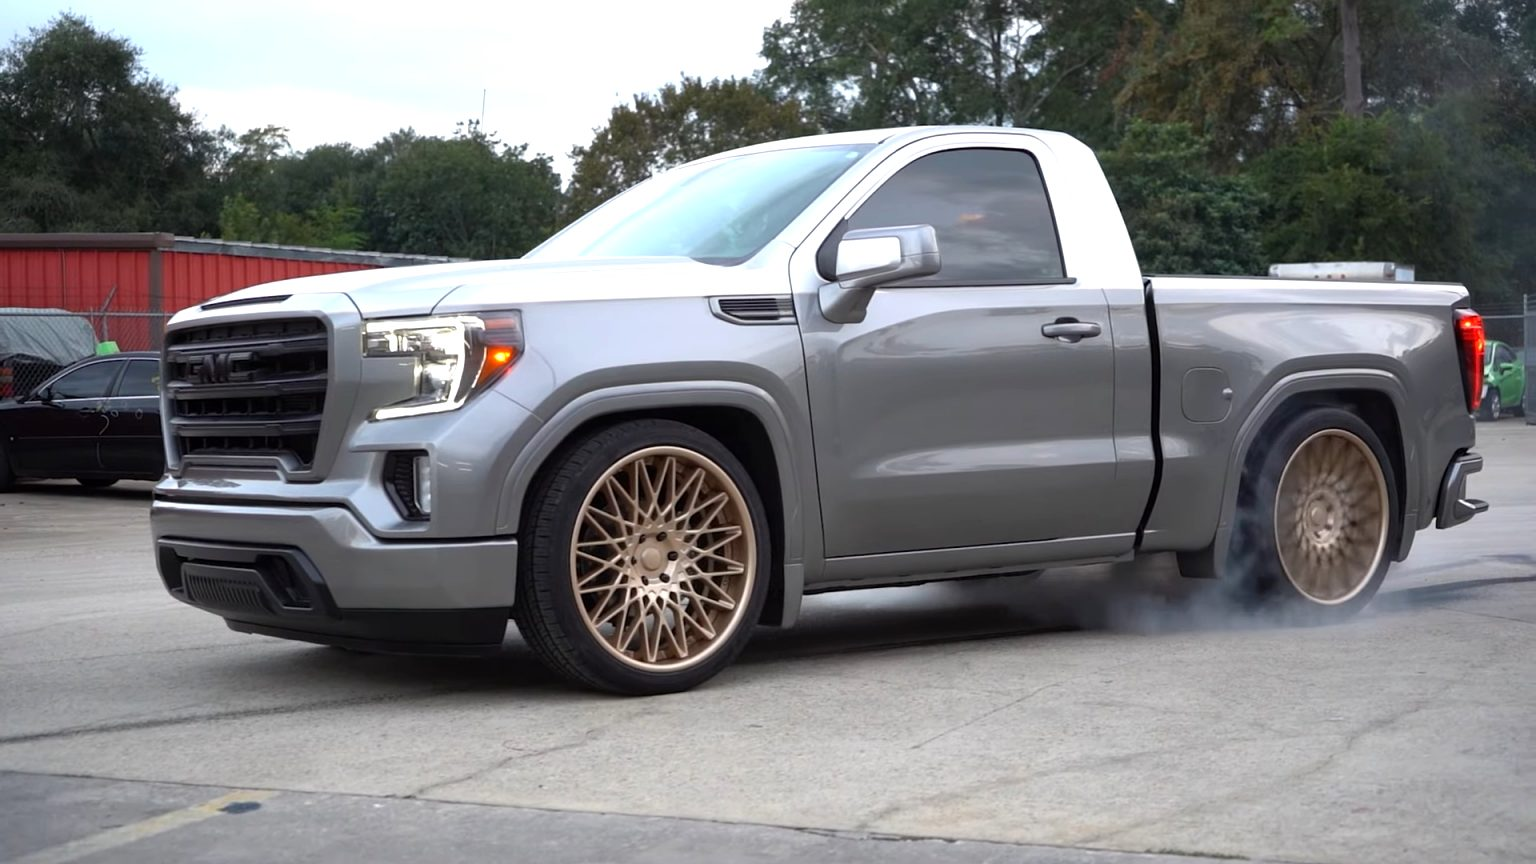 2021 GMC regular cab short bed Redesign and Review